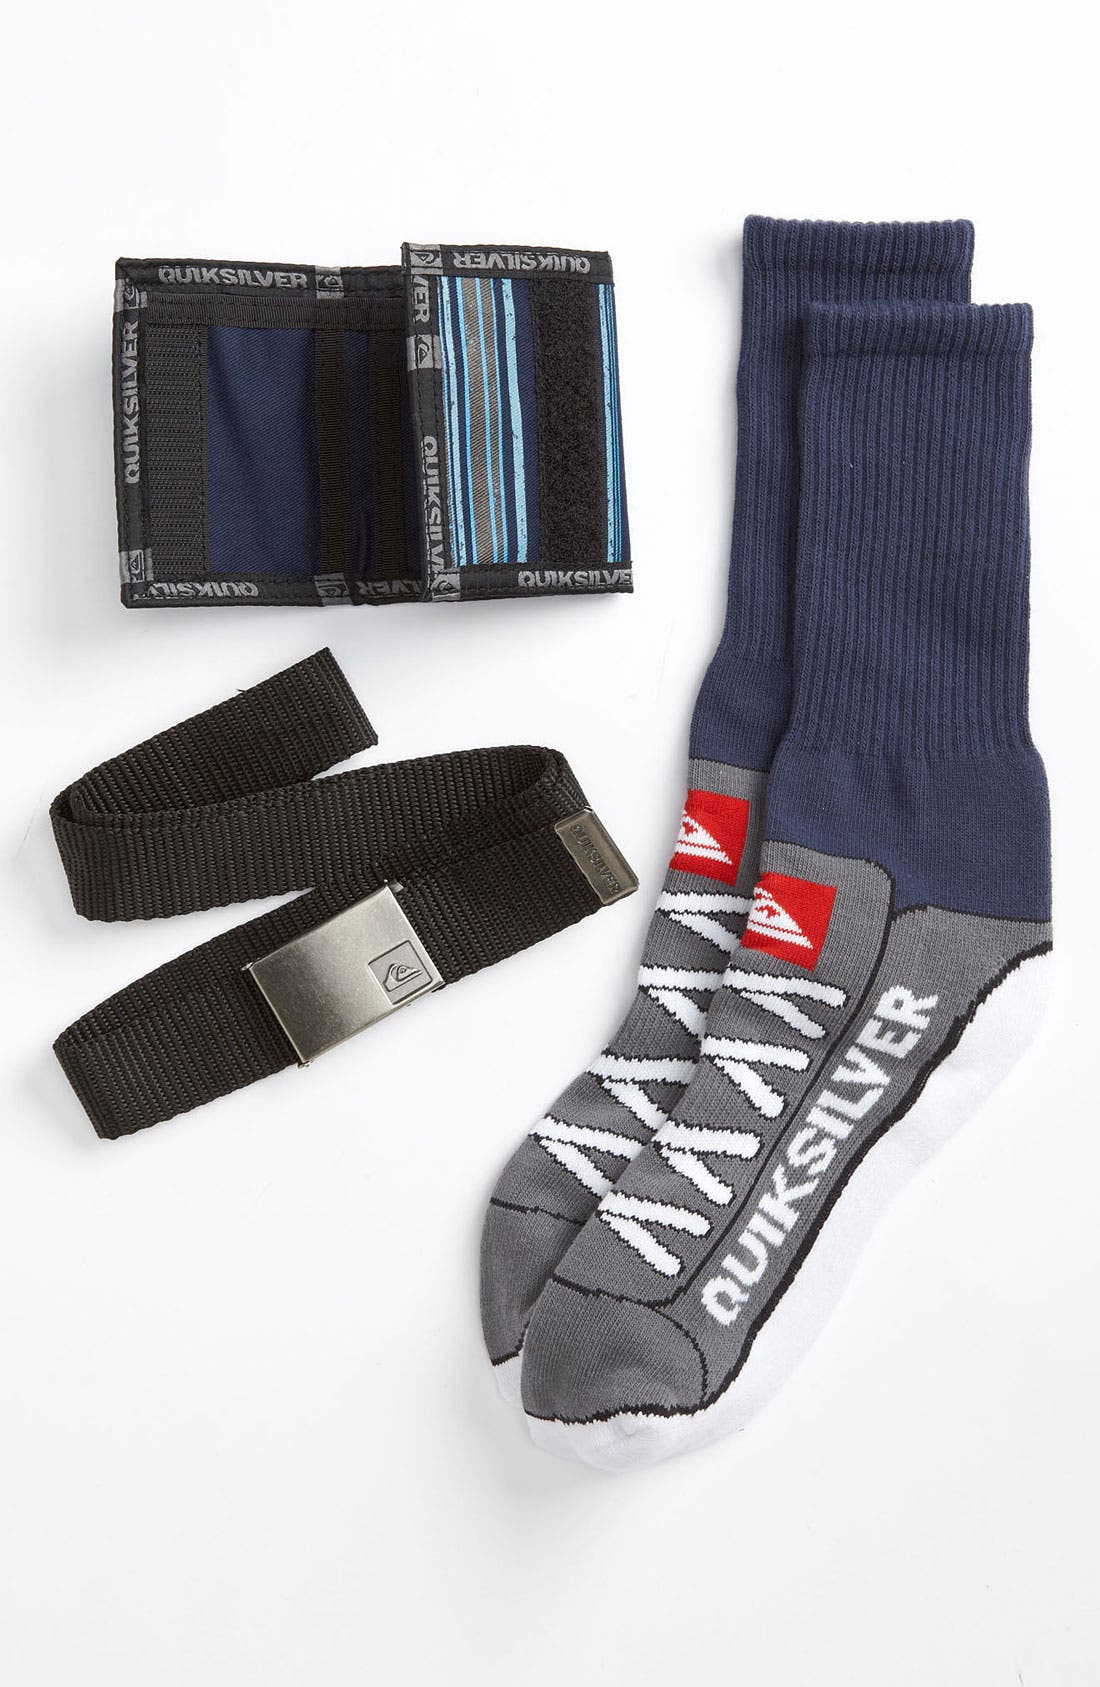 Main Image - Quiksilver Belt, Wallet & Socks Gift Pack (Big Boys)